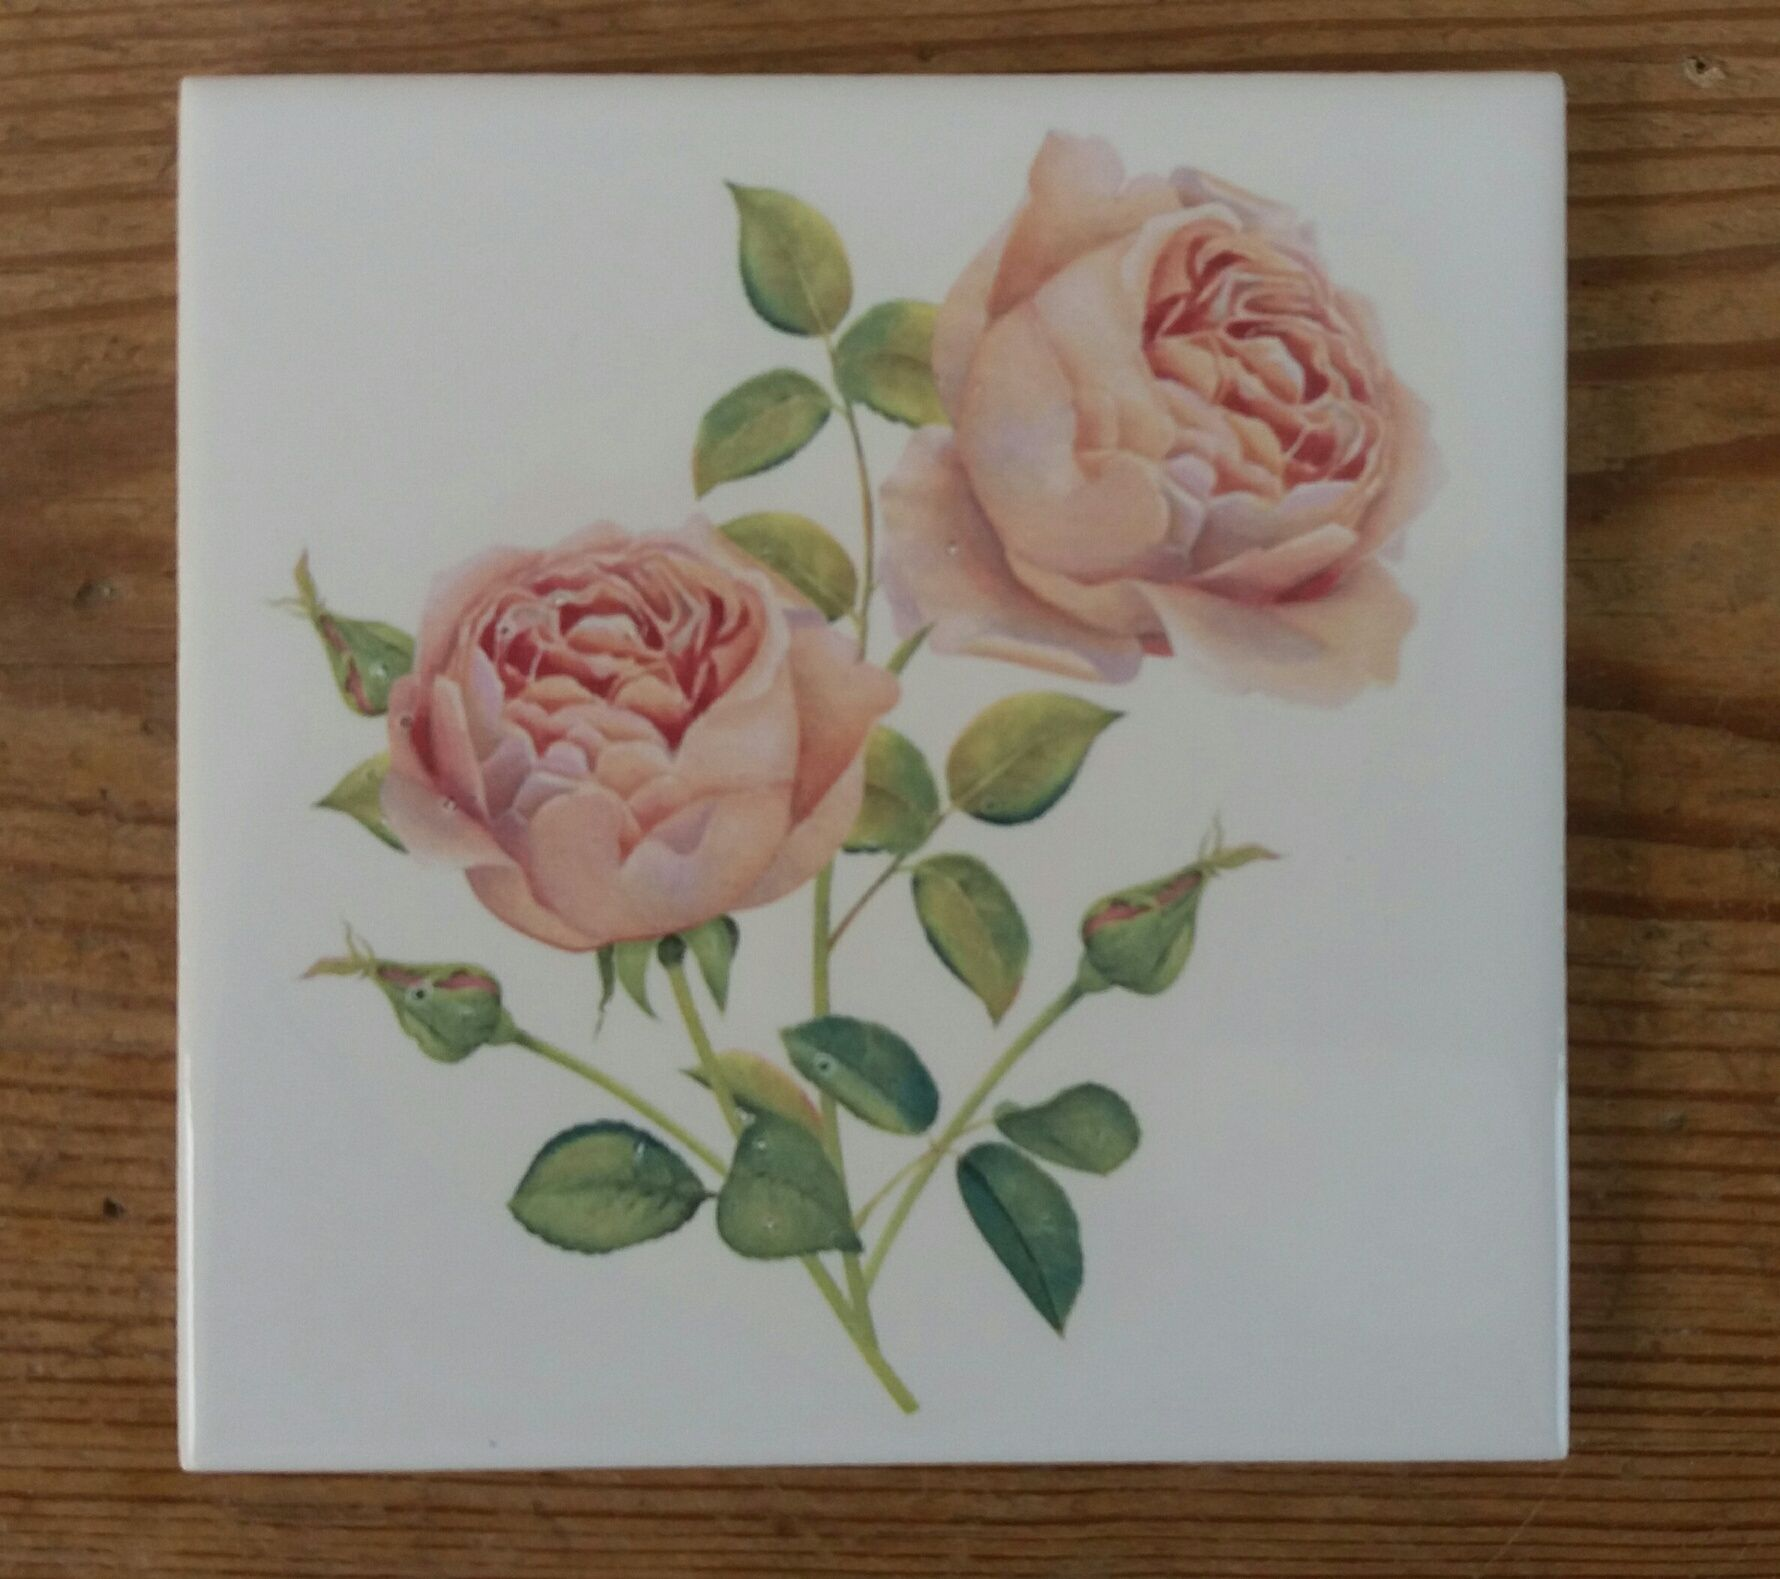 Decorative ceramic wall tile with pink roses by floral tiles decorative ceramic wall tile with pink roses by floral tiles originally a watercolour painting giving a hand painted effect mix and match with some of doublecrazyfo Gallery